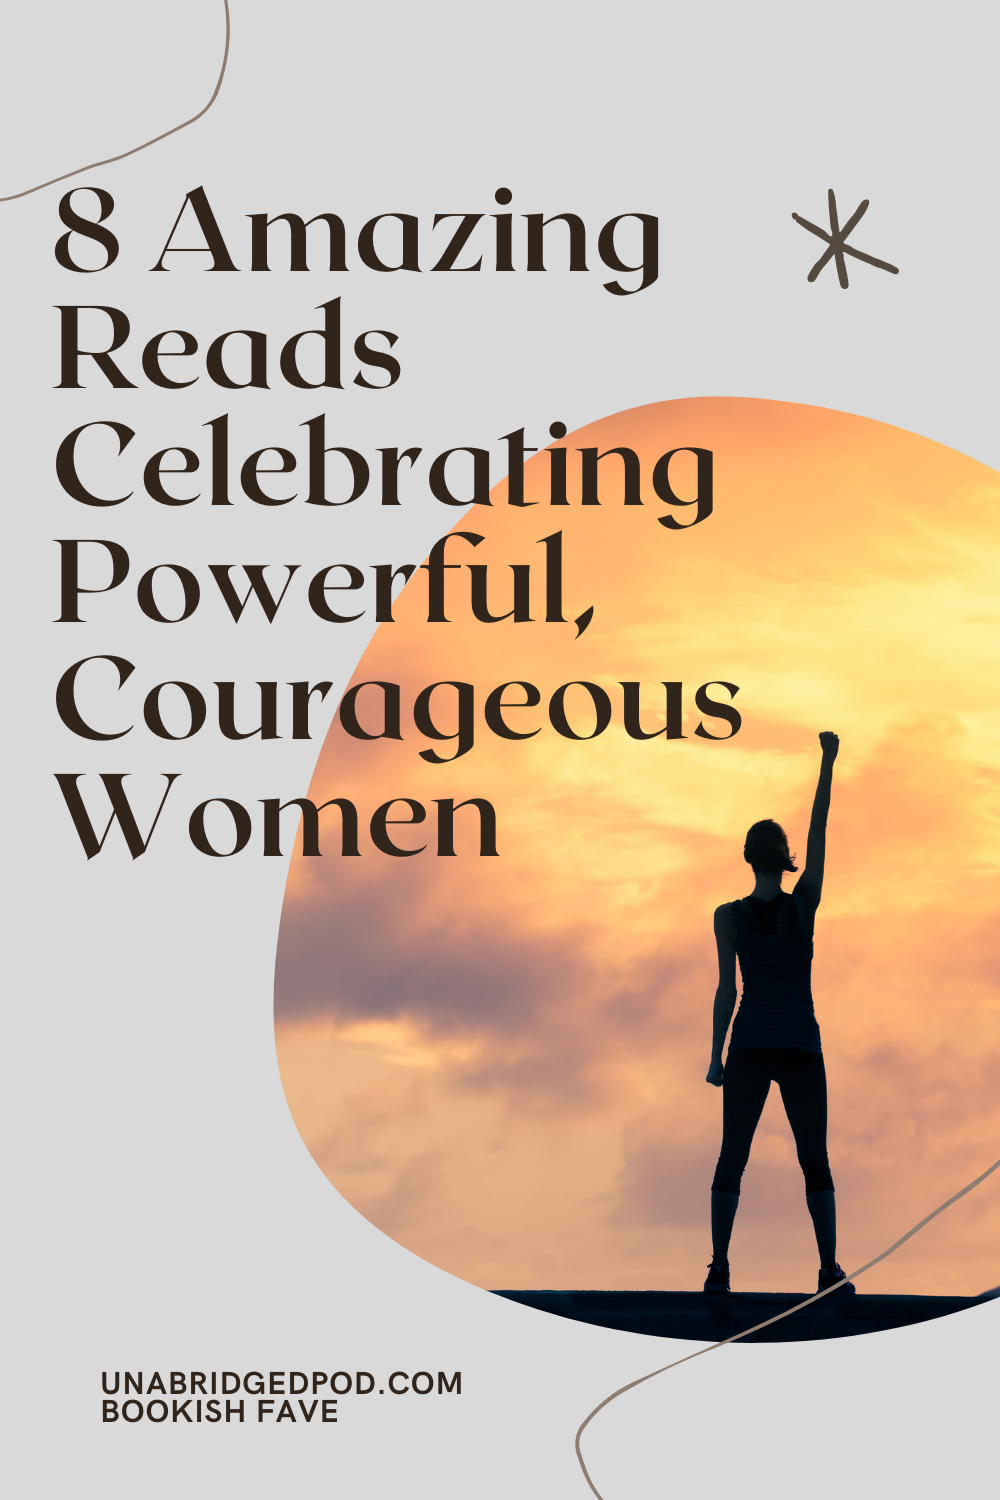 """Graphic with text """"8 Amazing Reads Celebrating Powerful, Courageous Women"""" and the silhouette of a woman with one arm raised in the air"""